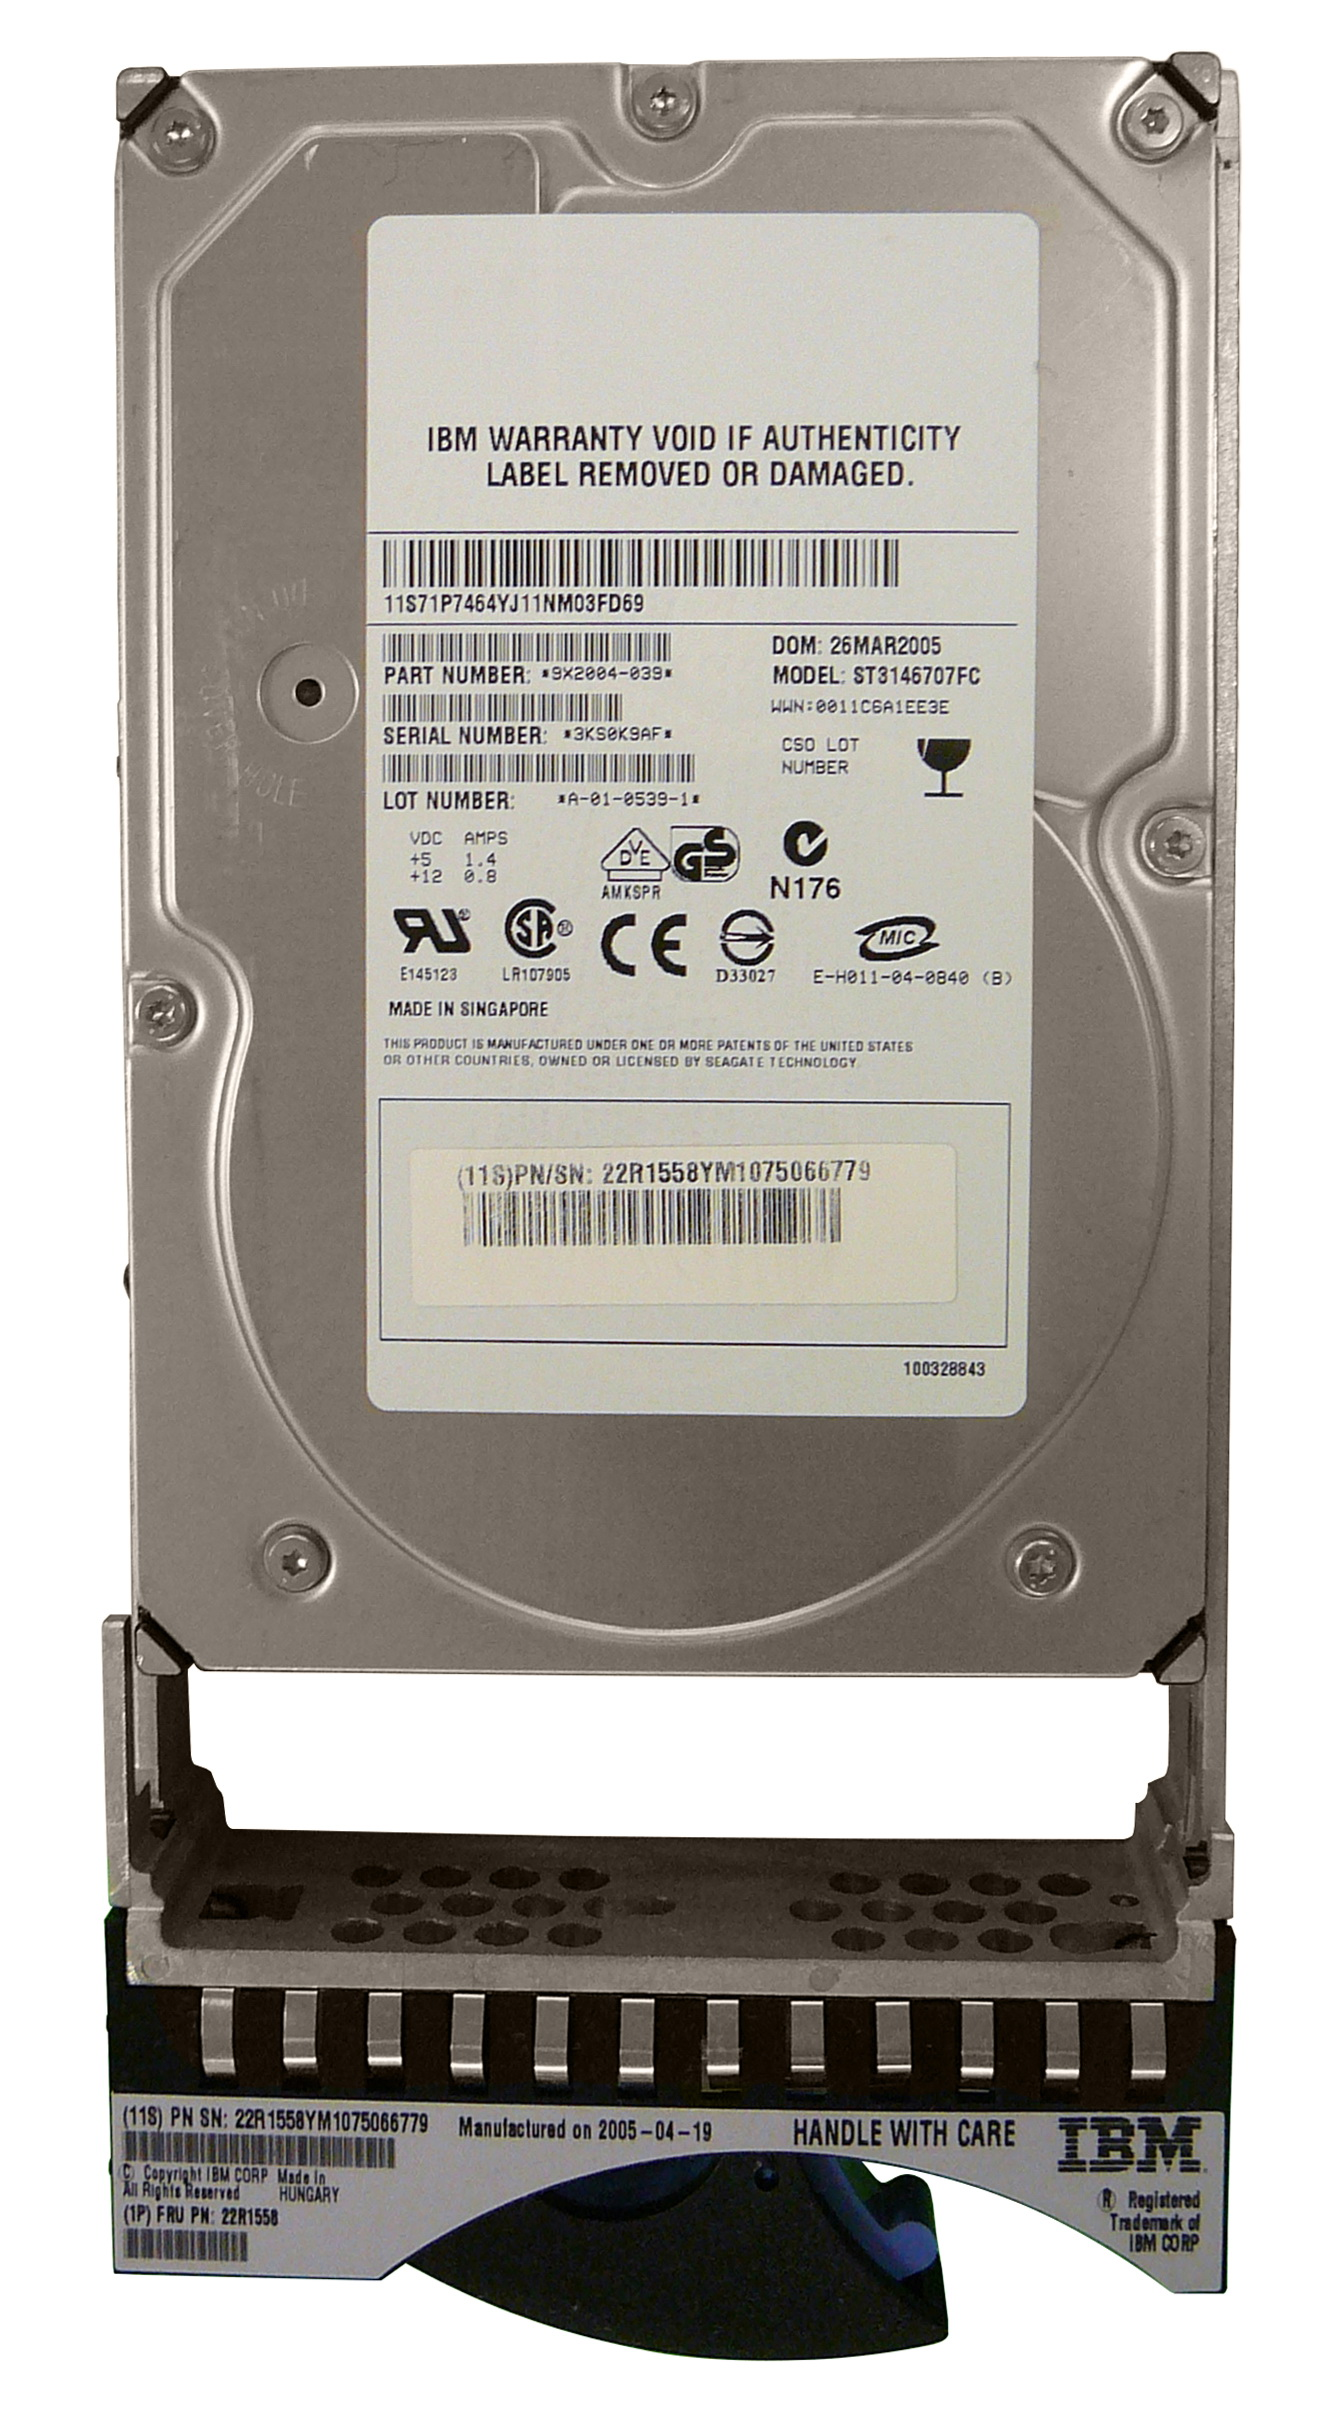 9X2004-039 Seagate Cheetah 10K.7 146GB 10000RPM Fibre Channel 2Gbps 8MB Cache 3.5-inch Internal Hard Drive